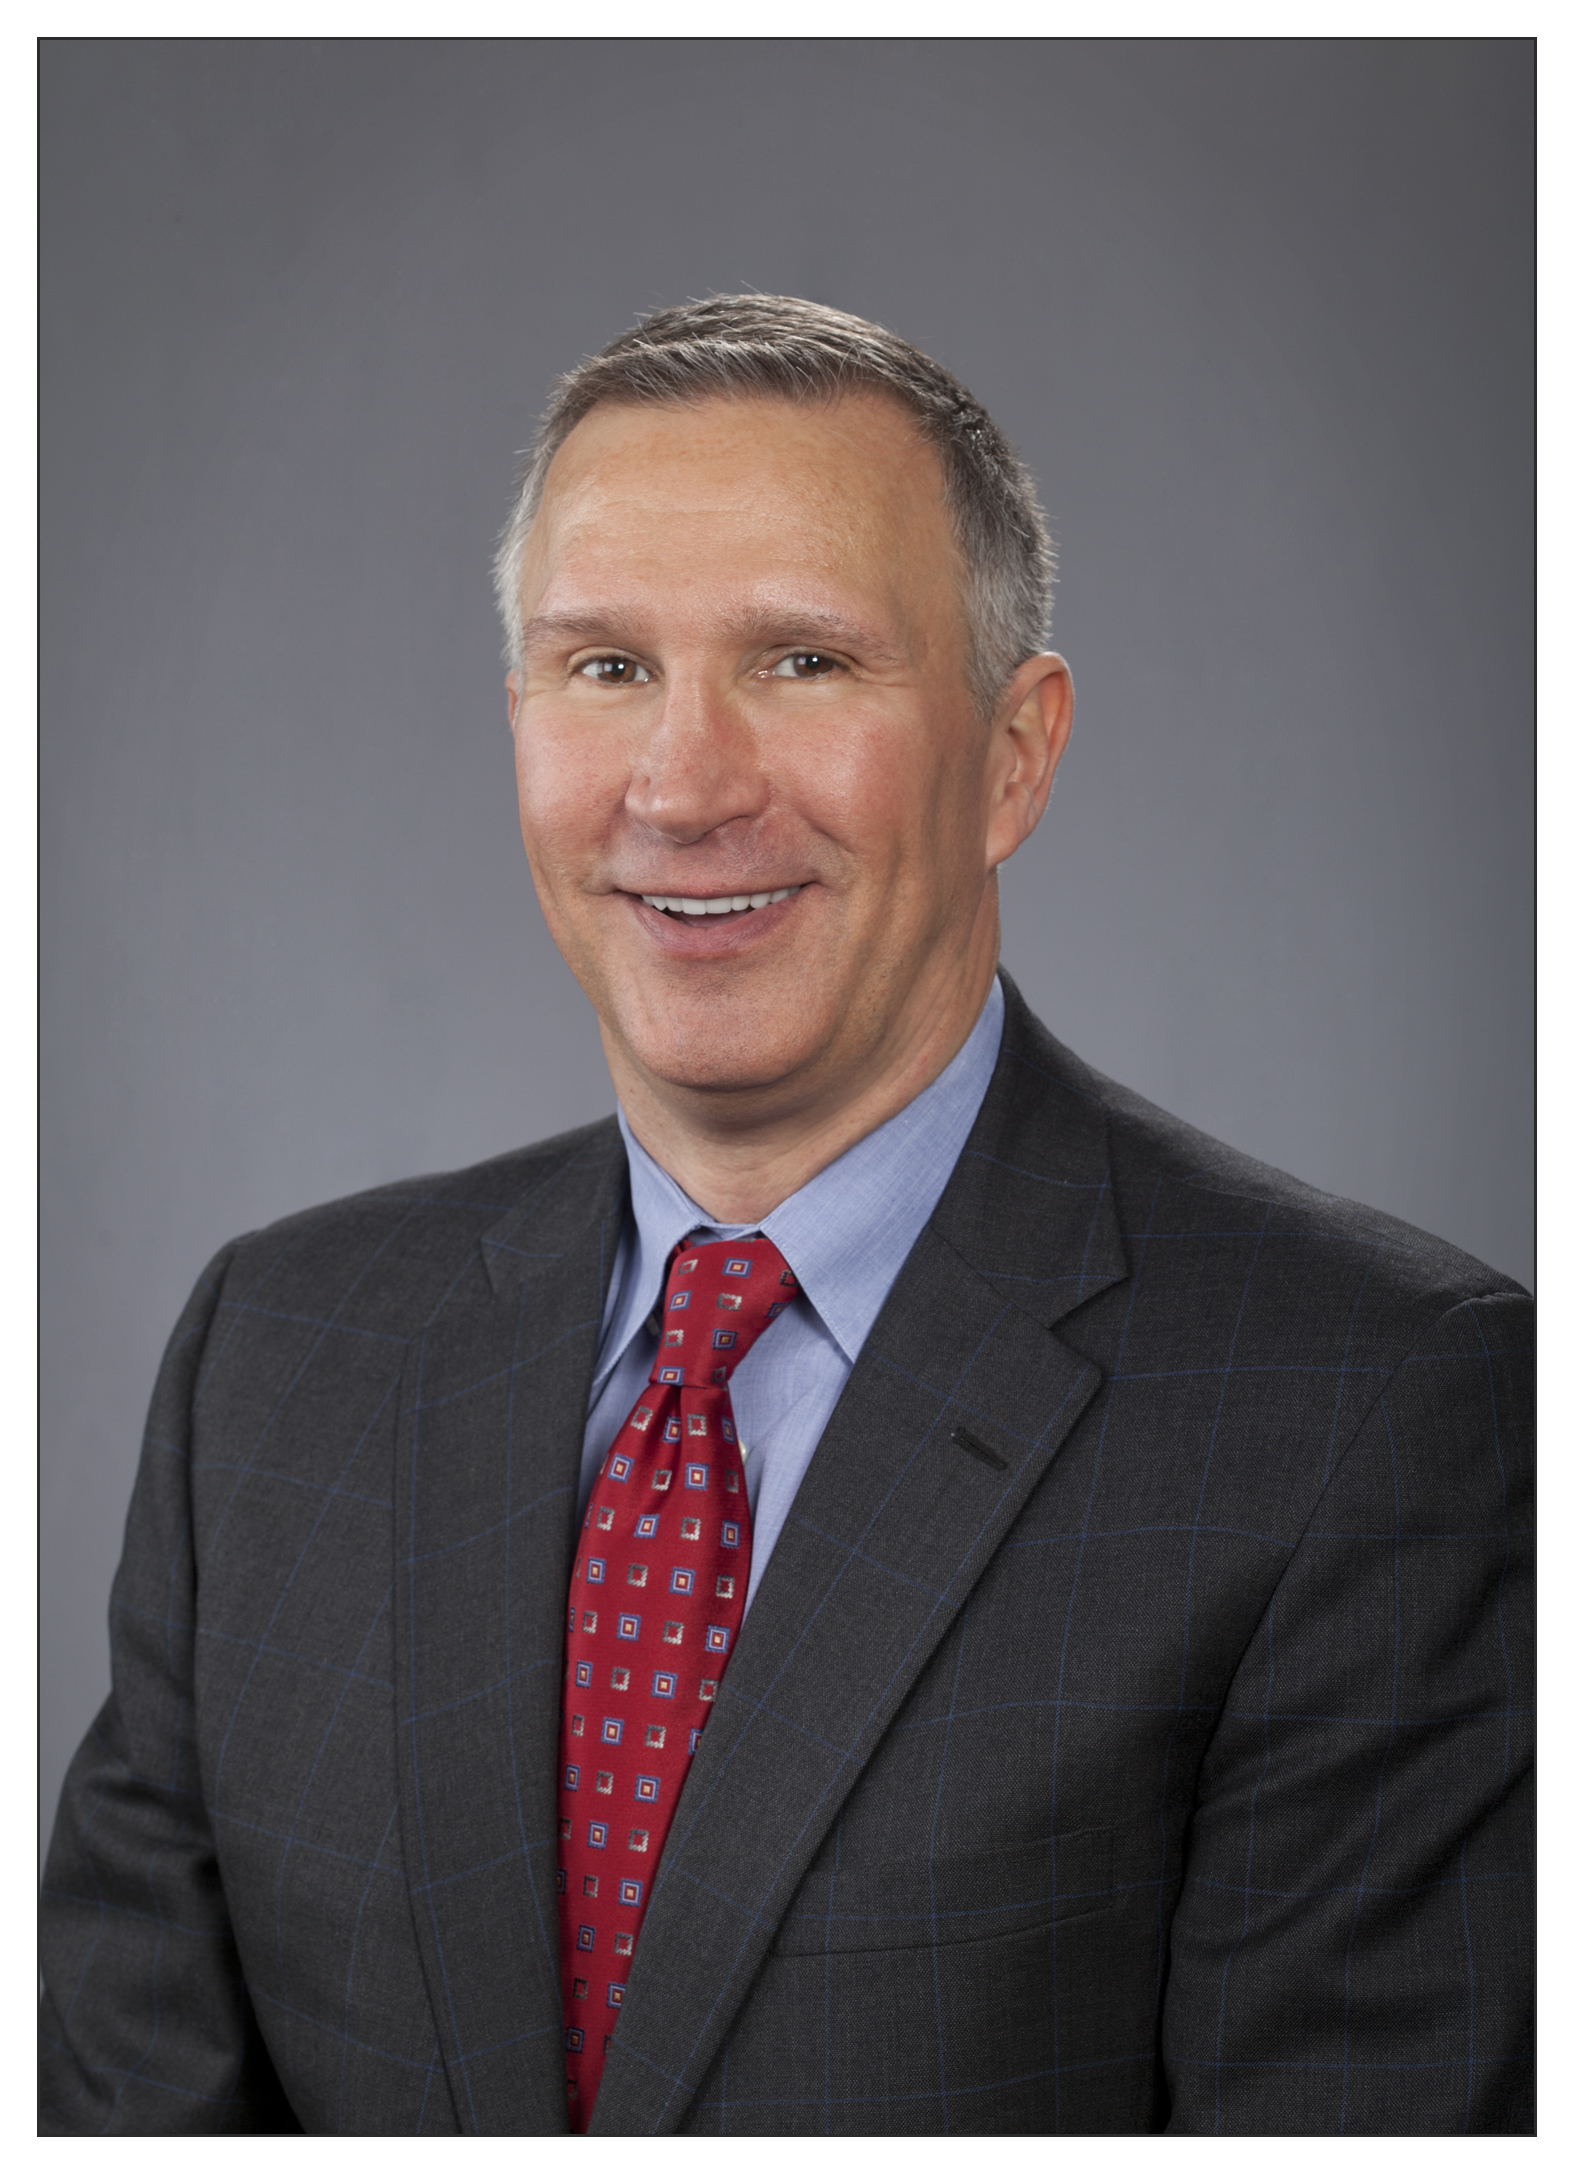 Michael Phillips, president and general manager for Cigna's Midwest market. (Photo: Business Wire)